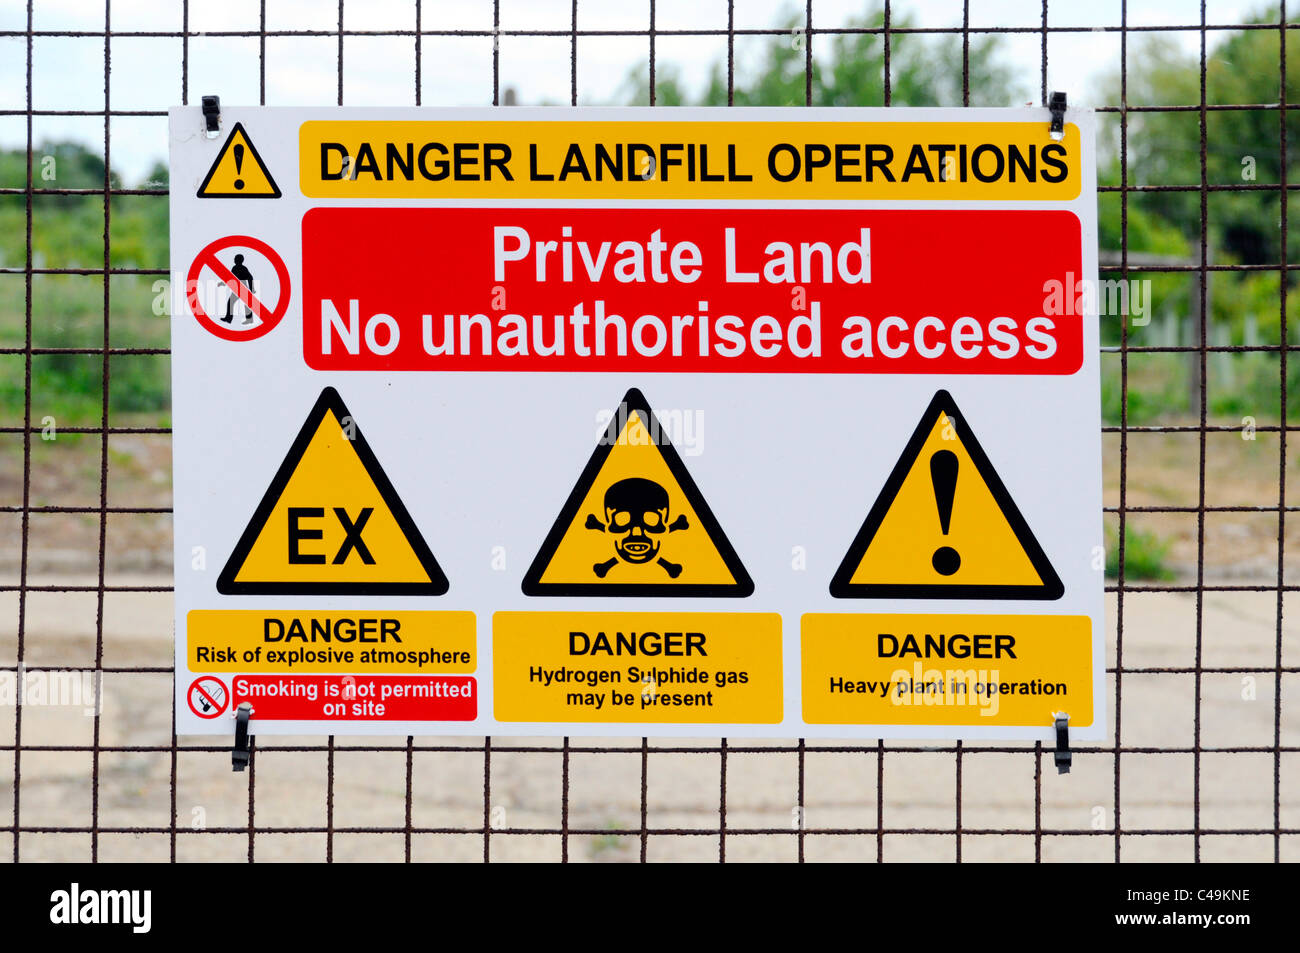 Warning sign landfill site private land danger from explosion so no smoking Hydrogen Sulphide gas & heavy machines - Stock Image